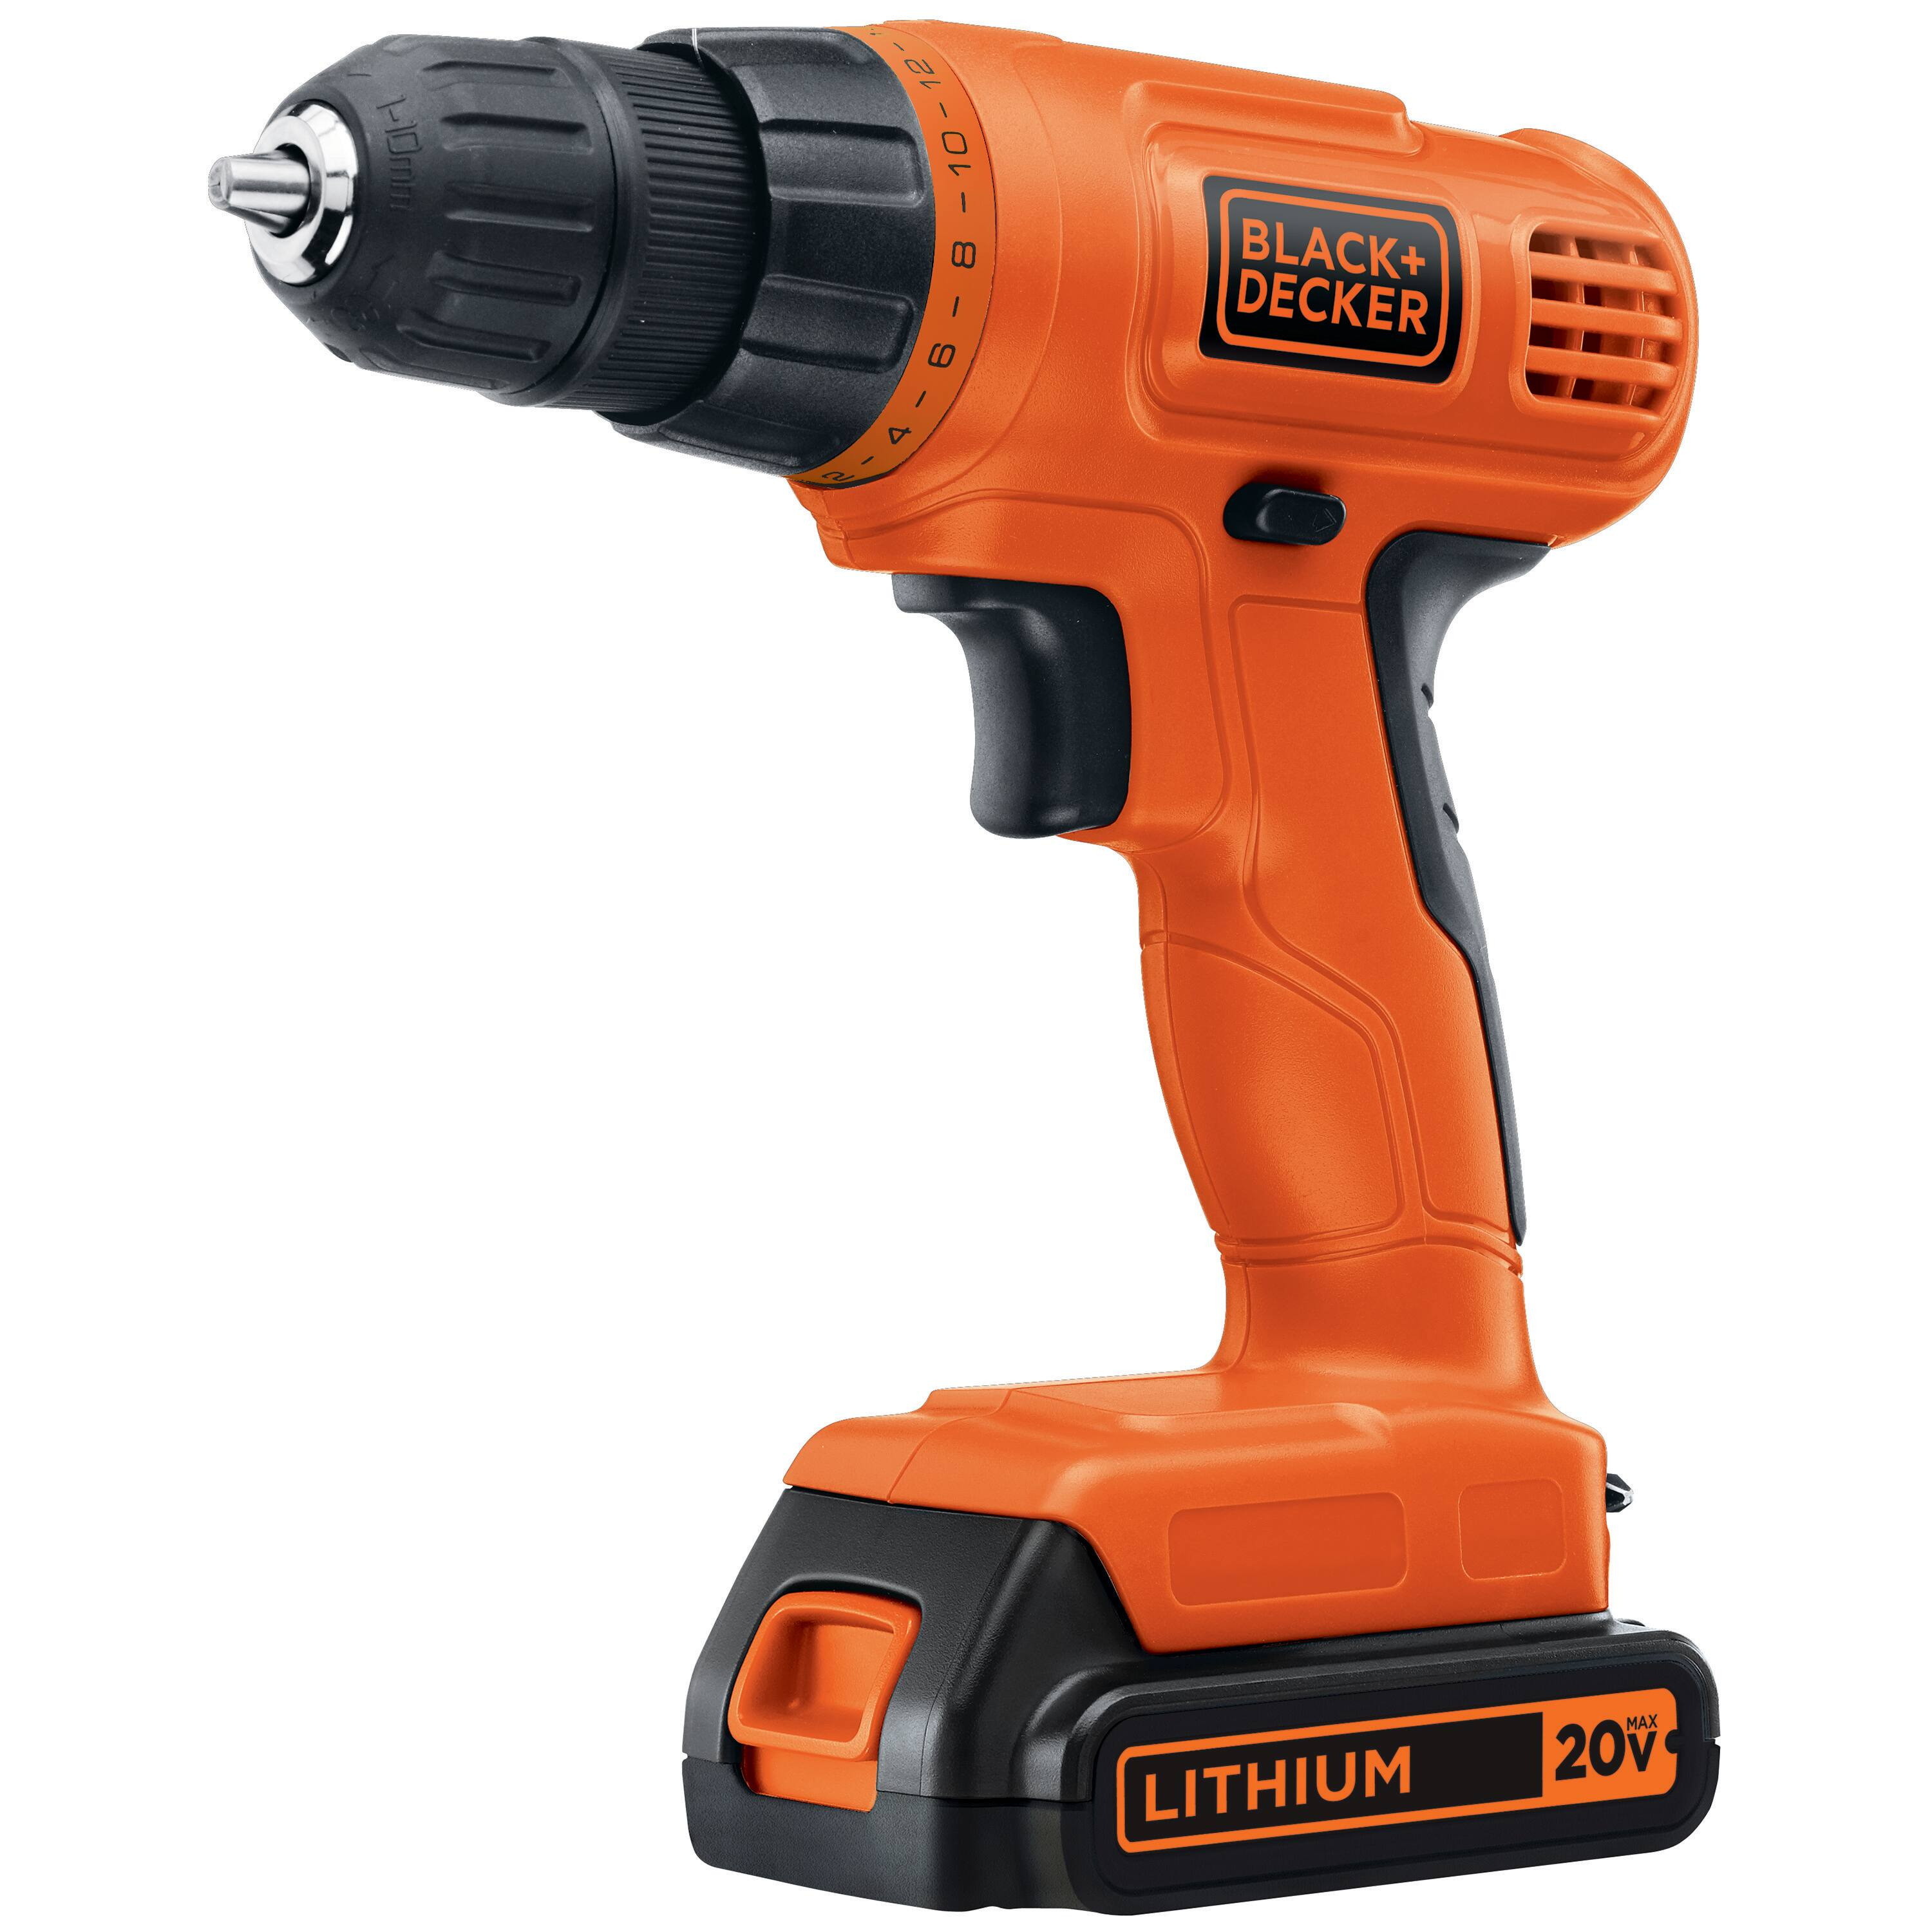 Black+Decker 20-Volt Max Lithium-Ion Cordless Drill w/ Battery $29.97 + Free Store Pickup ~ Walmart